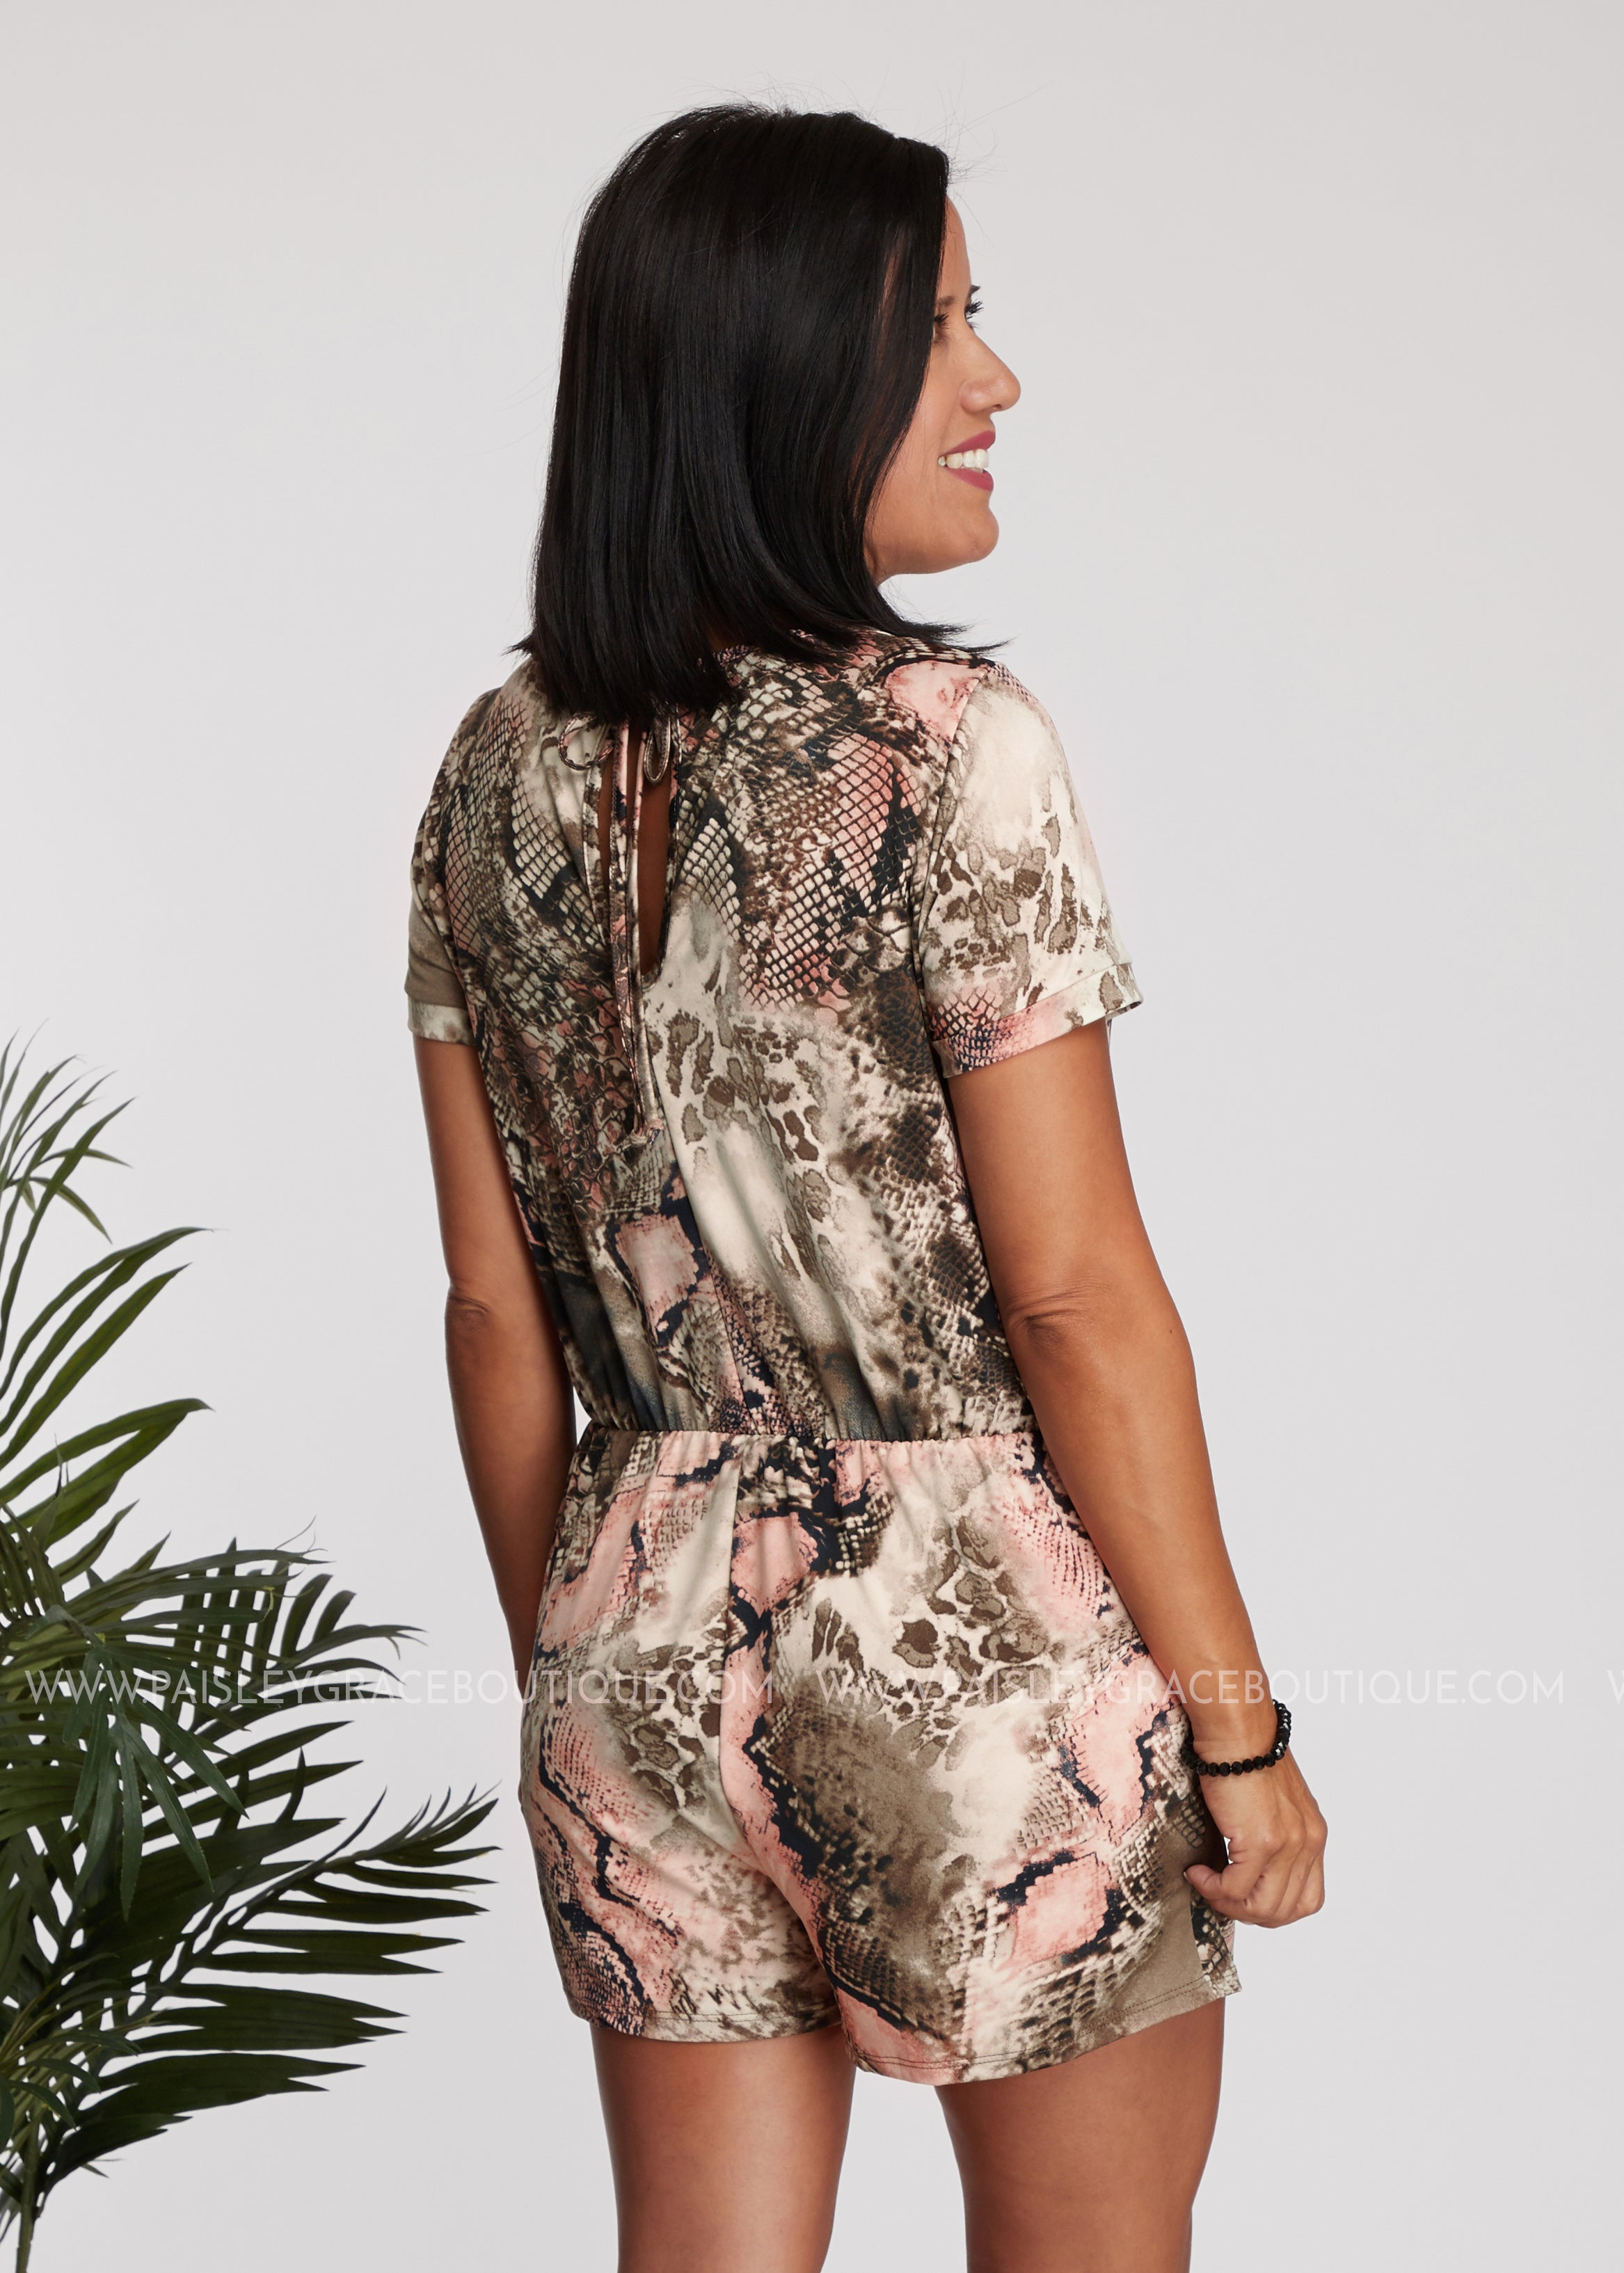 So Charming Romper - FINAL SALE